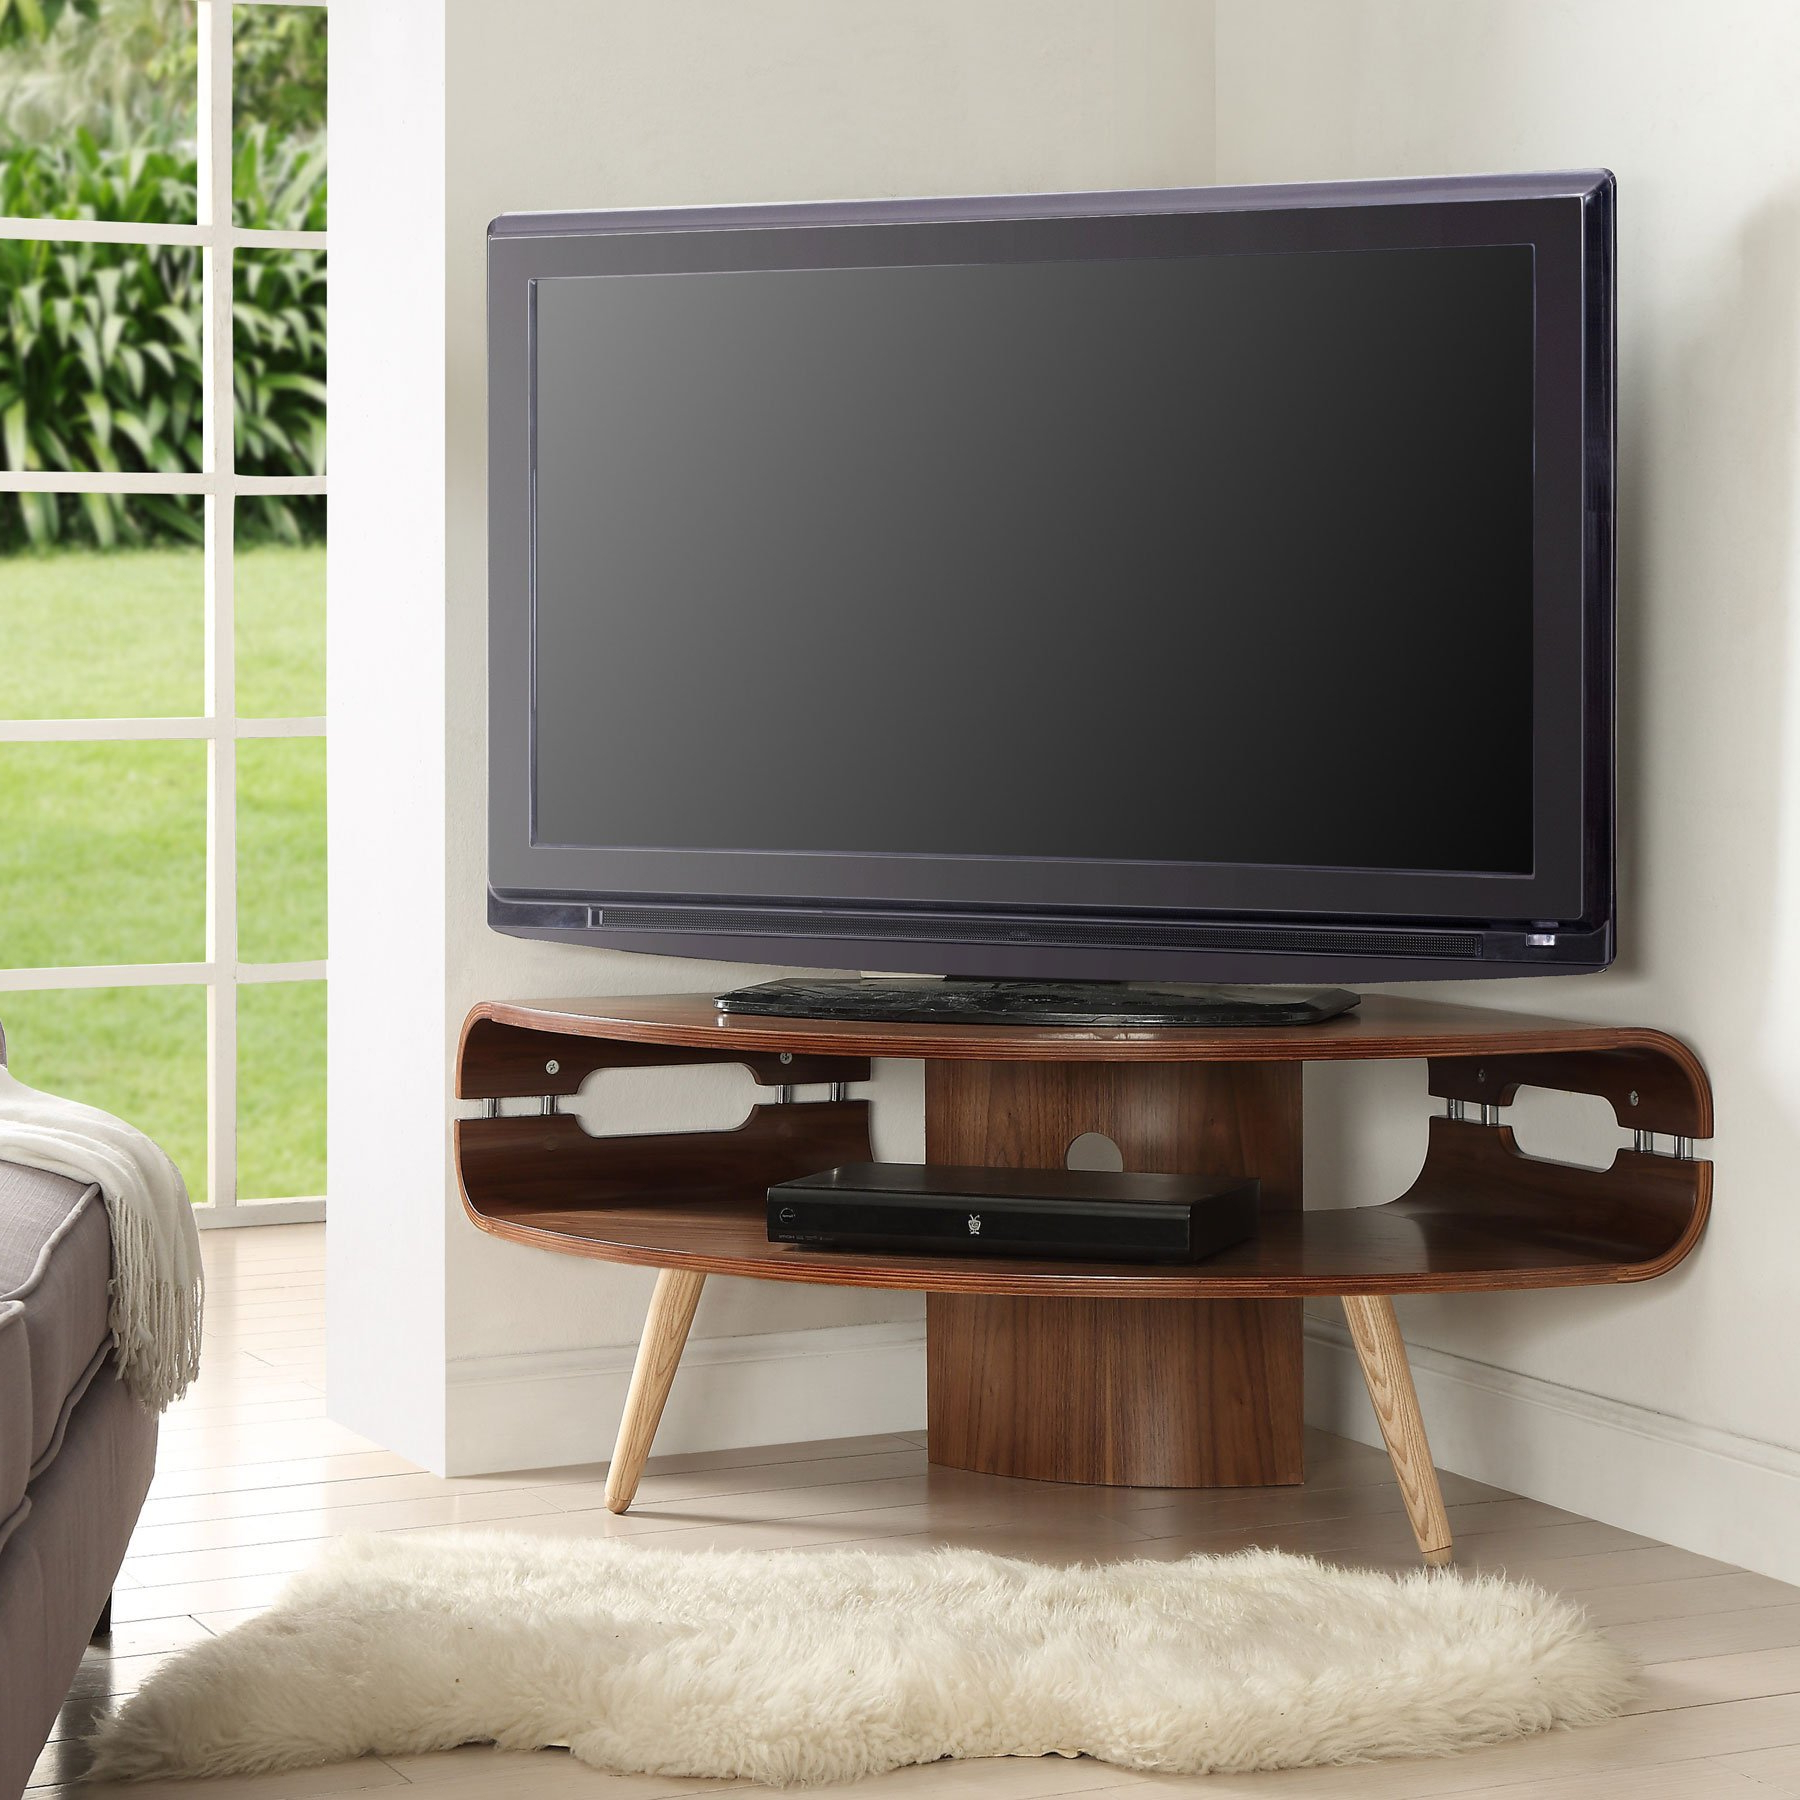 """Allegra Tv Stands For Tvs Up To 50"""" With Most Recently Released Jual Jf701 Walnut Corner Tv Stand For Up To 50"""" Tvs (View 10 of 25)"""